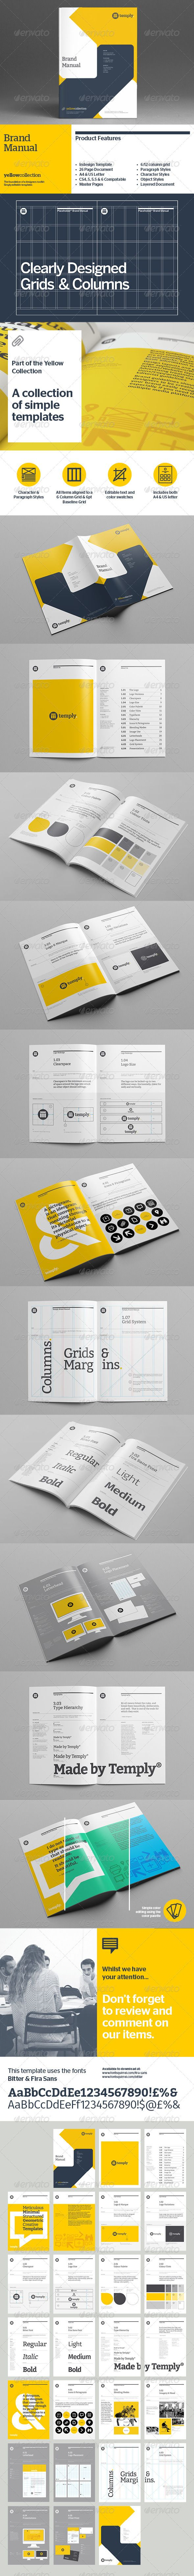 Brand Book Design Template Design Brochure Download Http